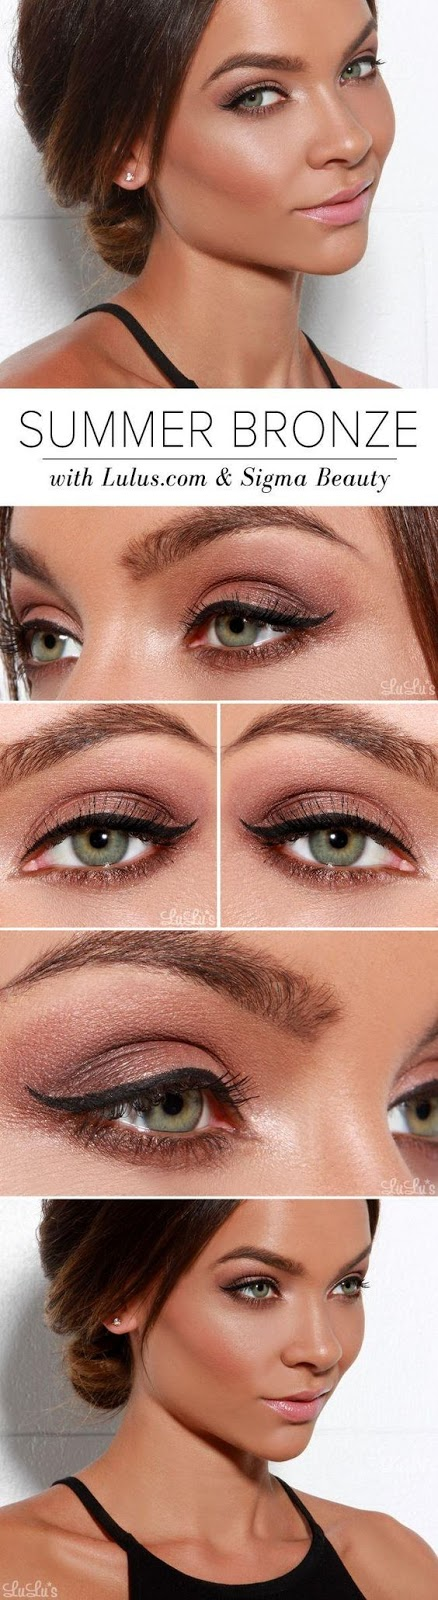 summer bronze makeup idea